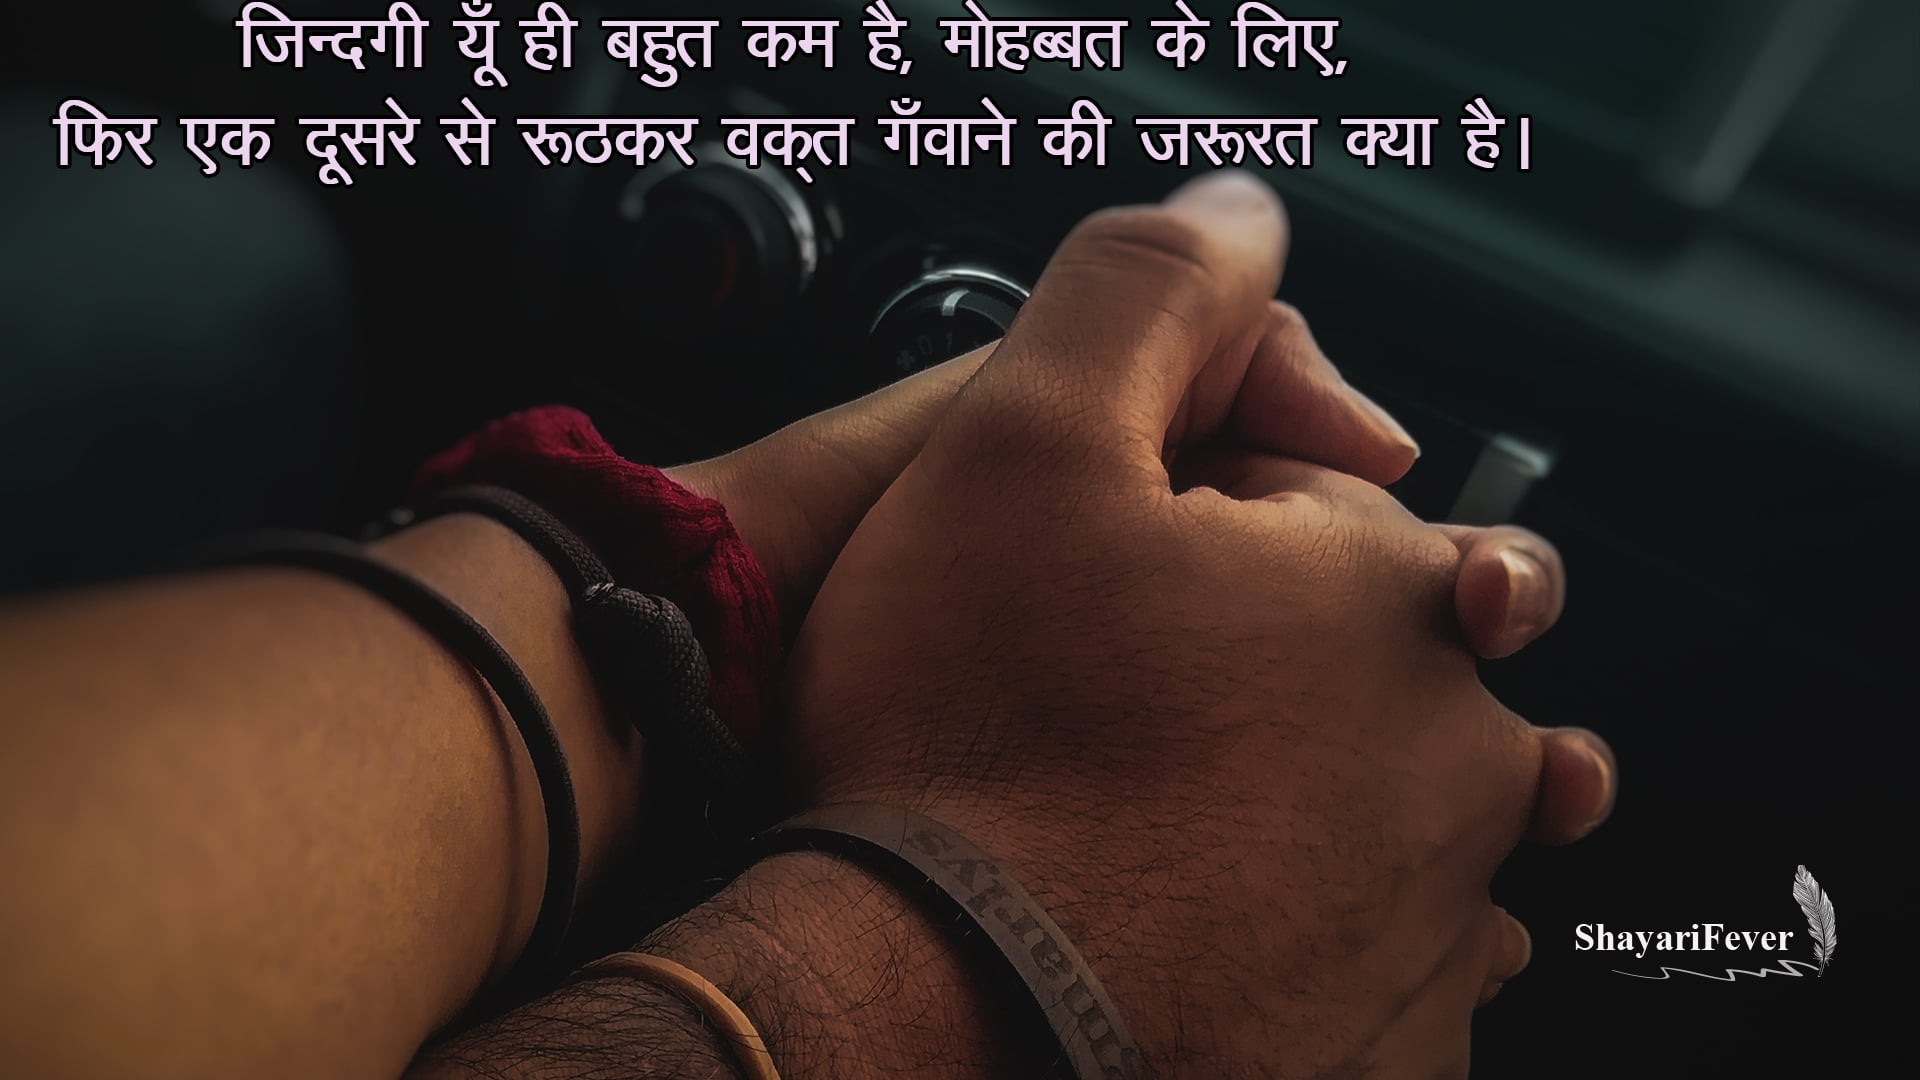 best love quotes in hindi for girlfriend